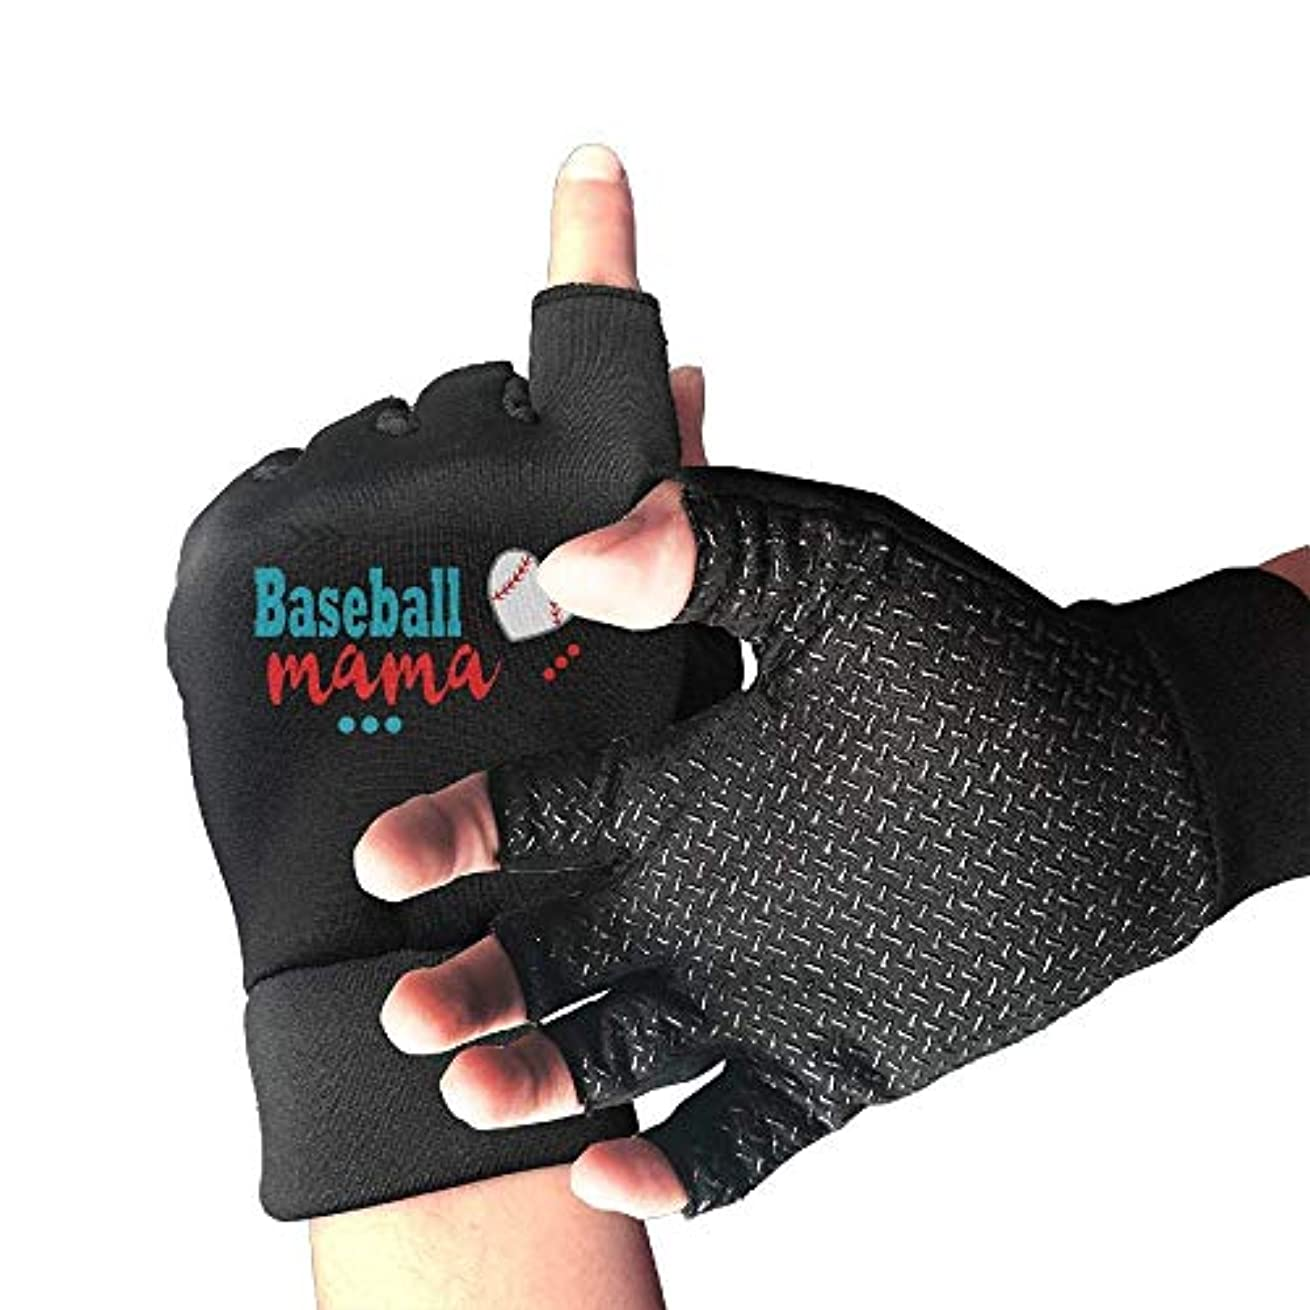 タイムリーな中止します温度計Cycling Gloves Baseball Mama Men's/Women's Mountain Bike Gloves Half Finger Anti-Slip Motorcycle Gloves